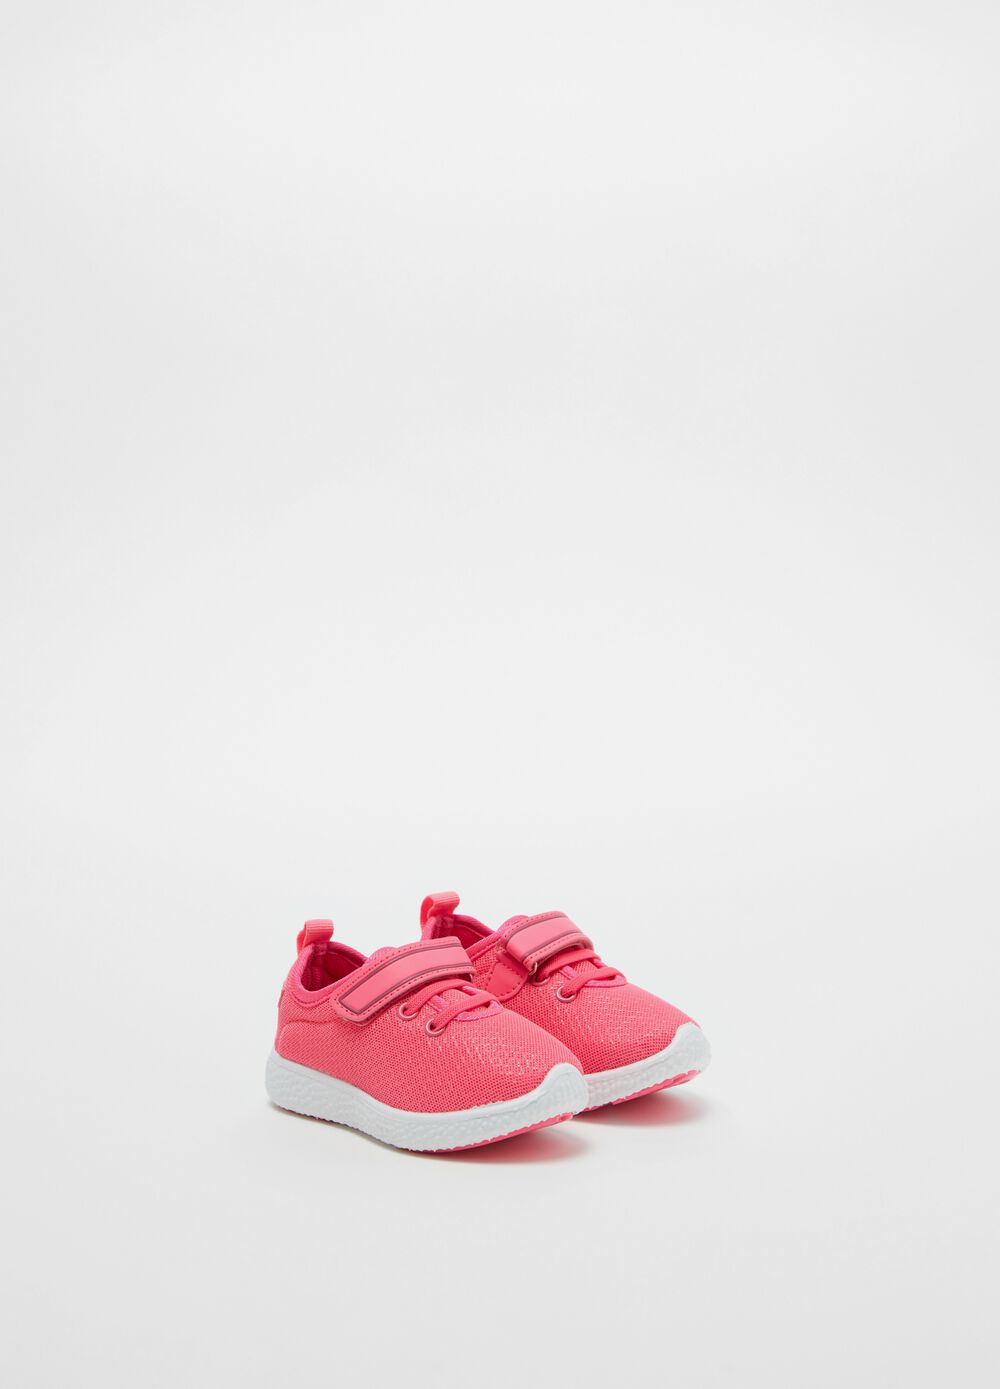 Solid colour sneakers